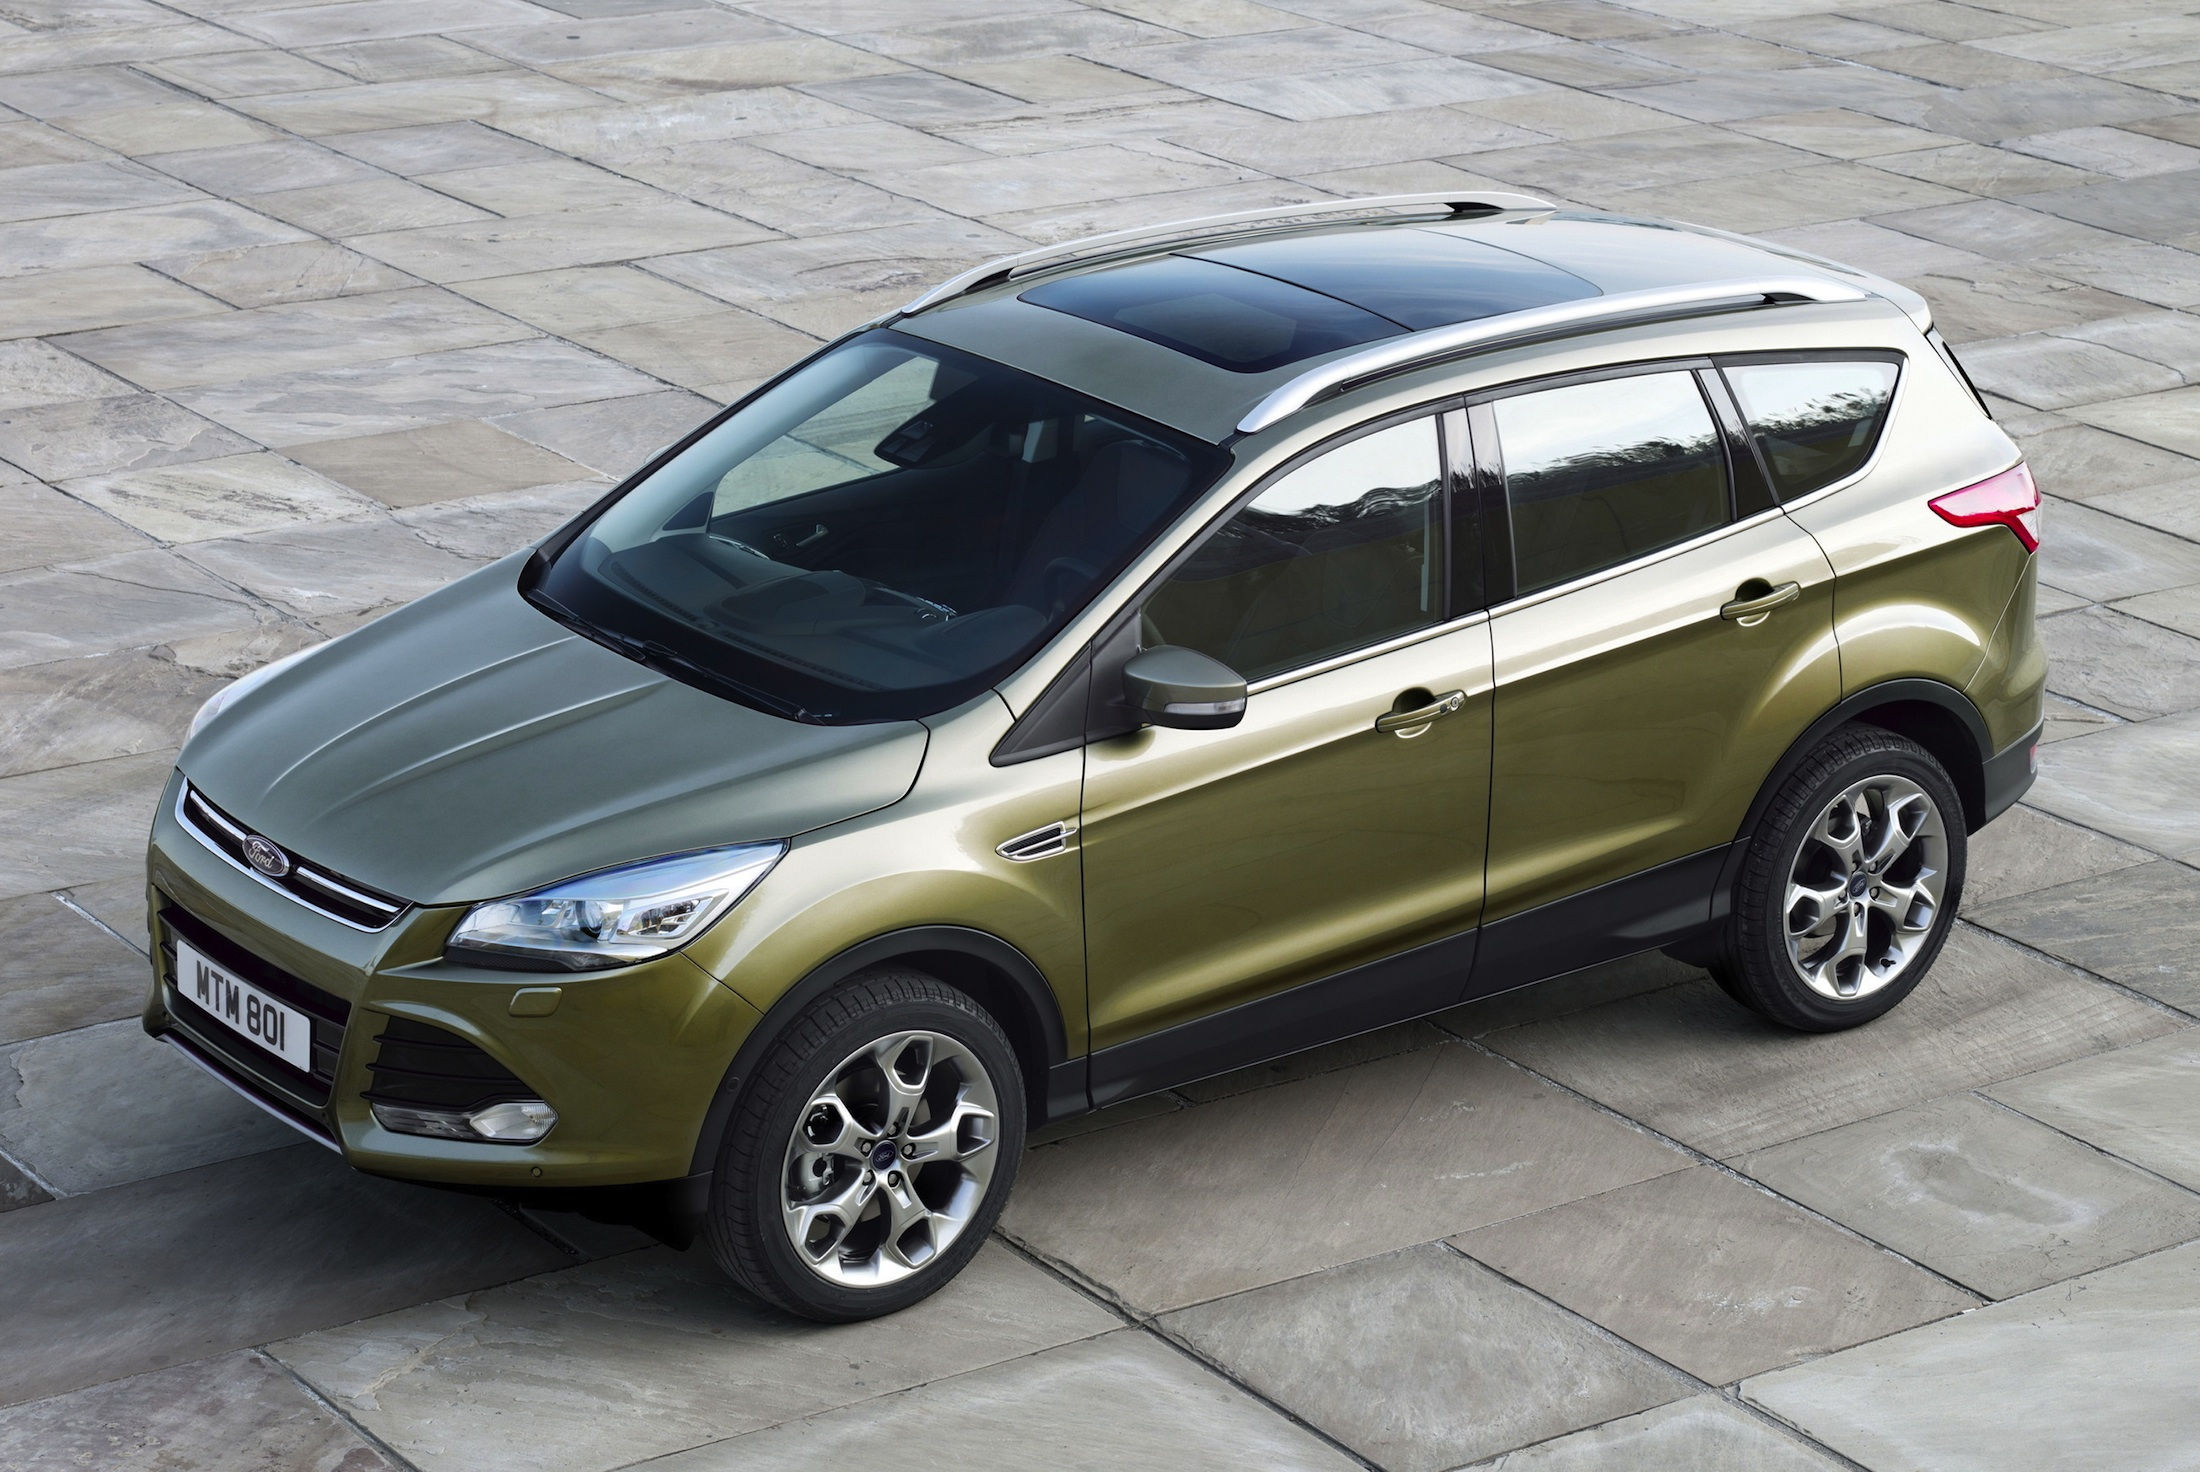 2013 ford kuga engines confirmed for australia photos 1. Black Bedroom Furniture Sets. Home Design Ideas